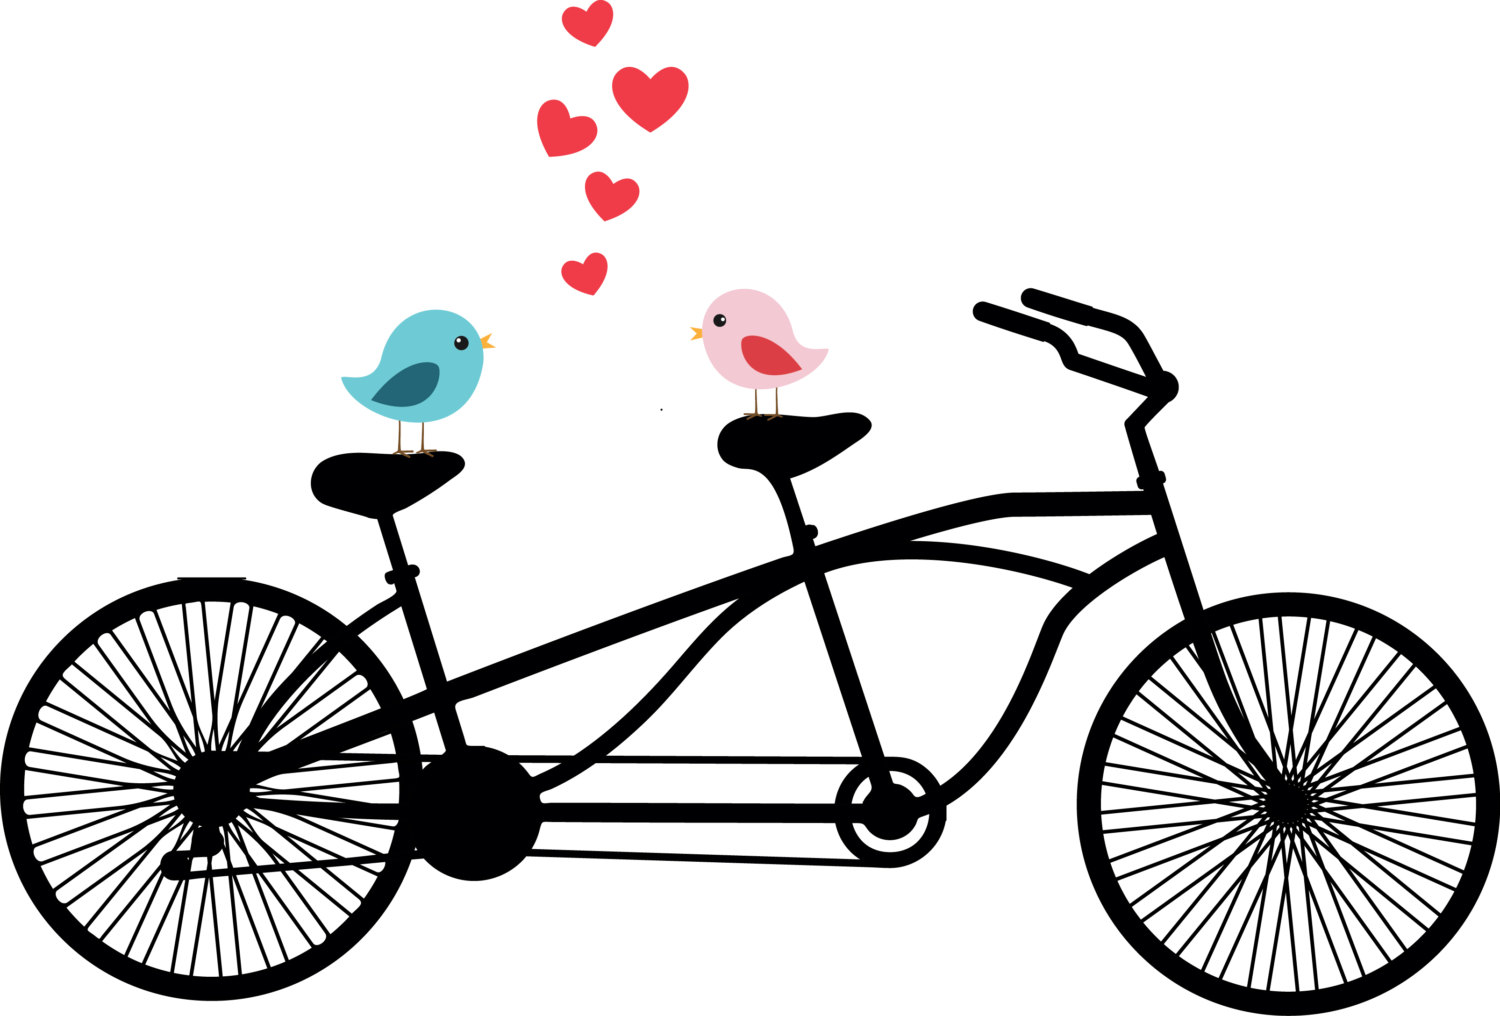 1500x1016 Tandem Bicycle Clipart, Love Birds, Wedding Invitation Clipart